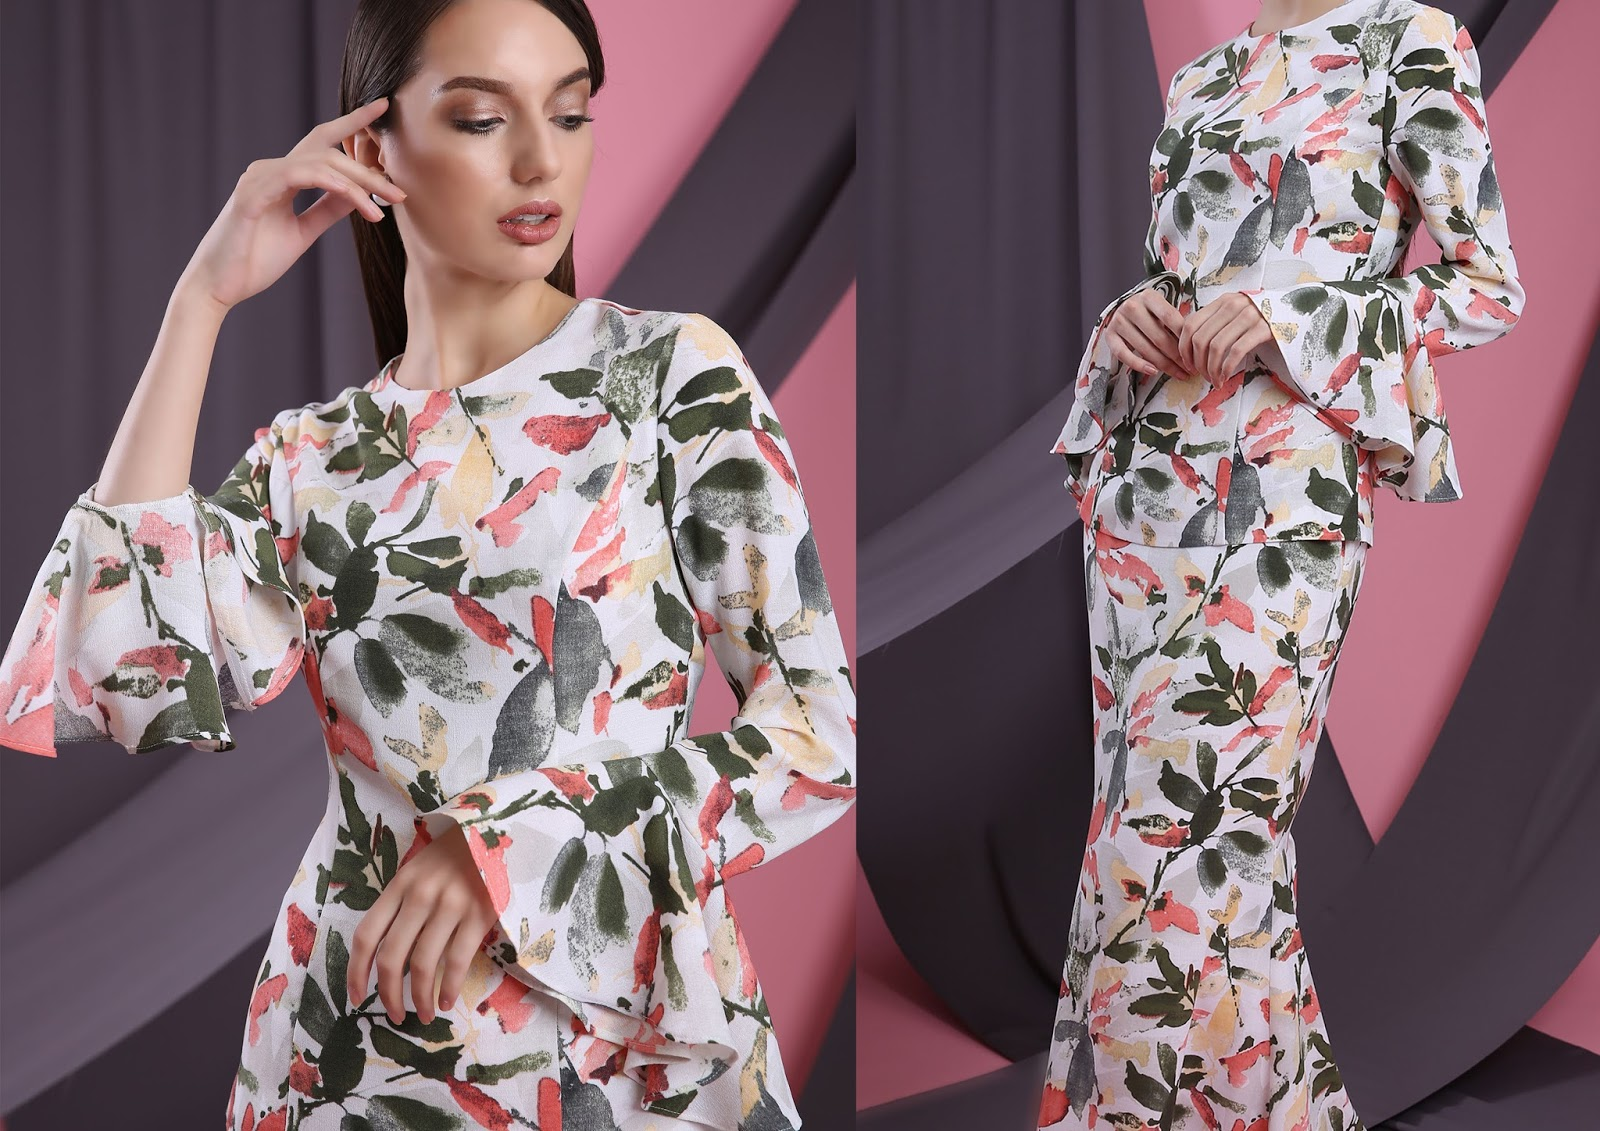 Jovian\u0027s JBasic Raya 2017 Collection - Small N Hot: Malaysia